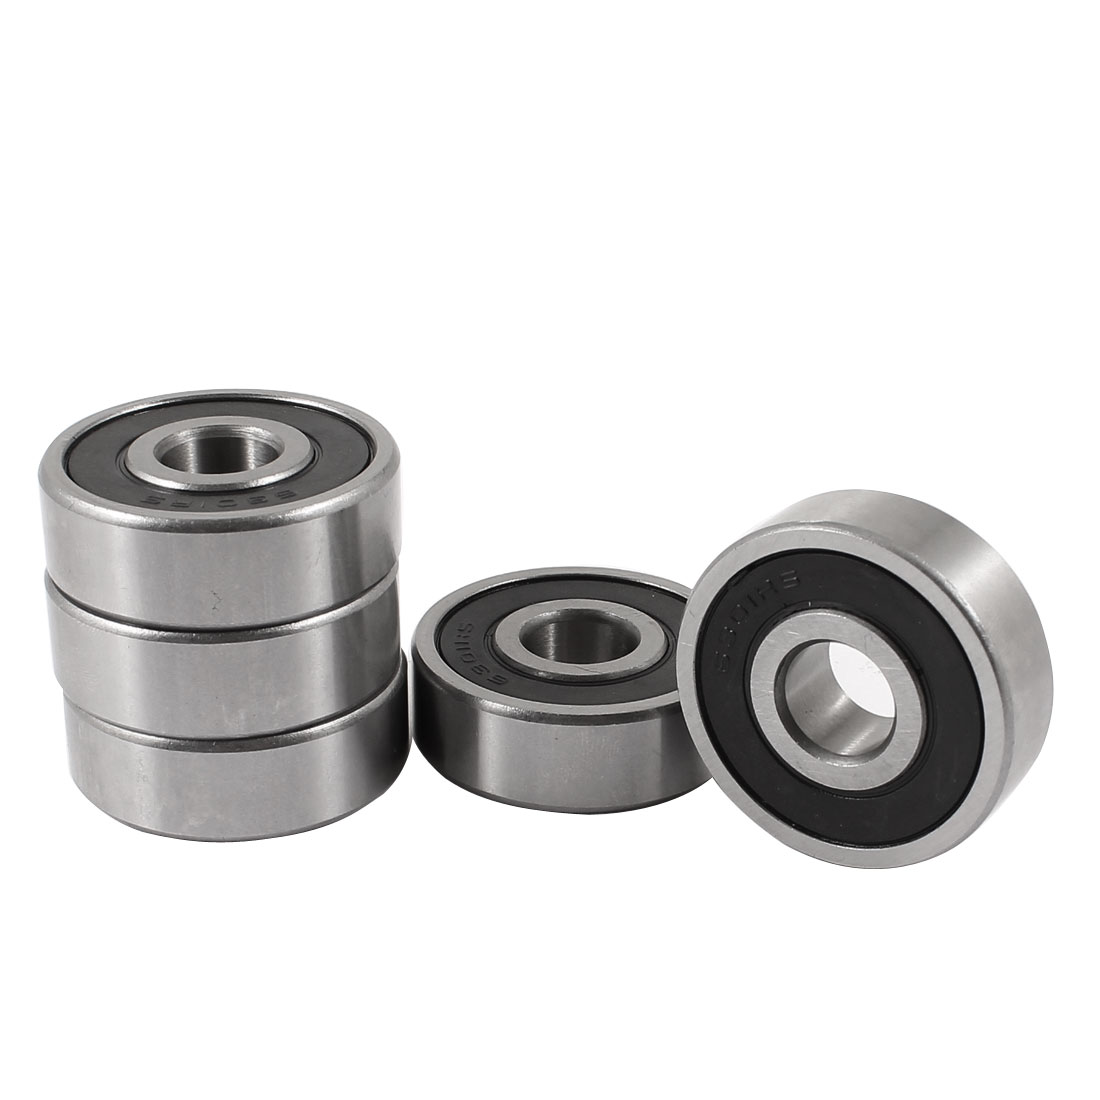 5 Pcs 6301RS 12 x 37 x 12mm Double Shields Deep Groove Ball Wheel Bearing